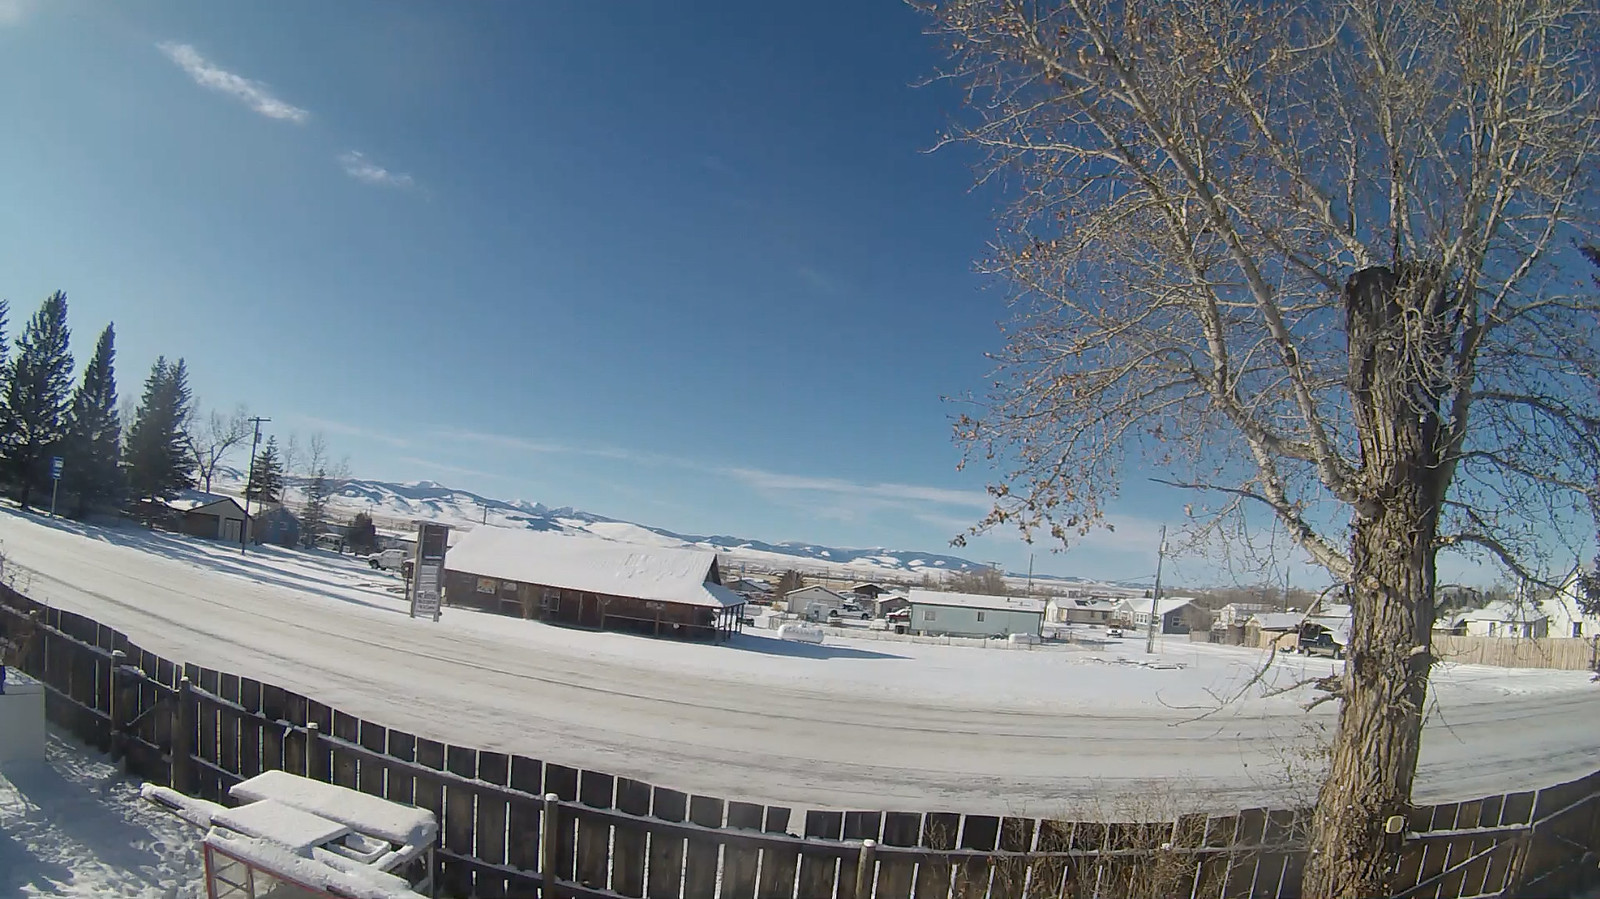 Webcam facing west towards the Barnwood Cabin in White Sulphur Springs, Montana with the Big Belt Mountains in the background.